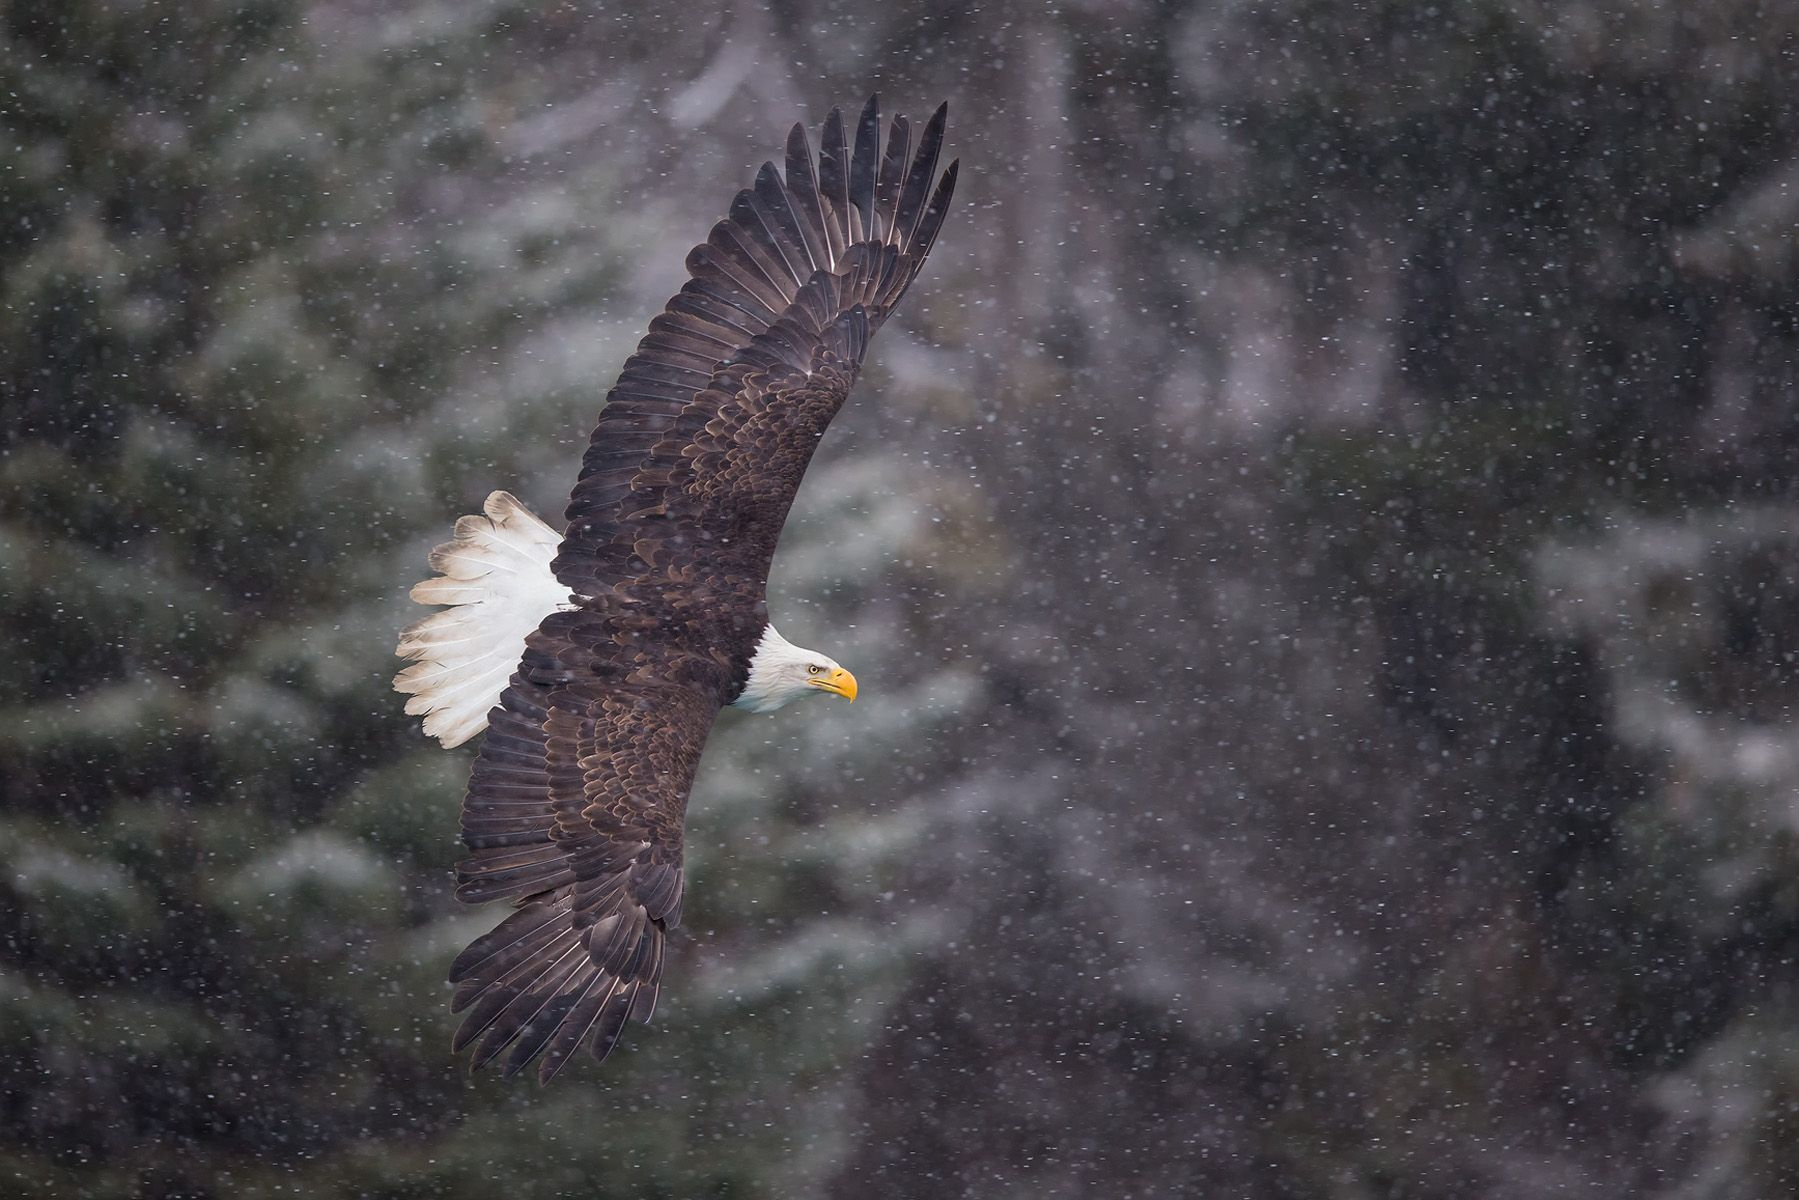 Bald eagle flying by mountain and spruch trees with snow_B8R9406-Kachemak Bay, Homer, AK.jpg